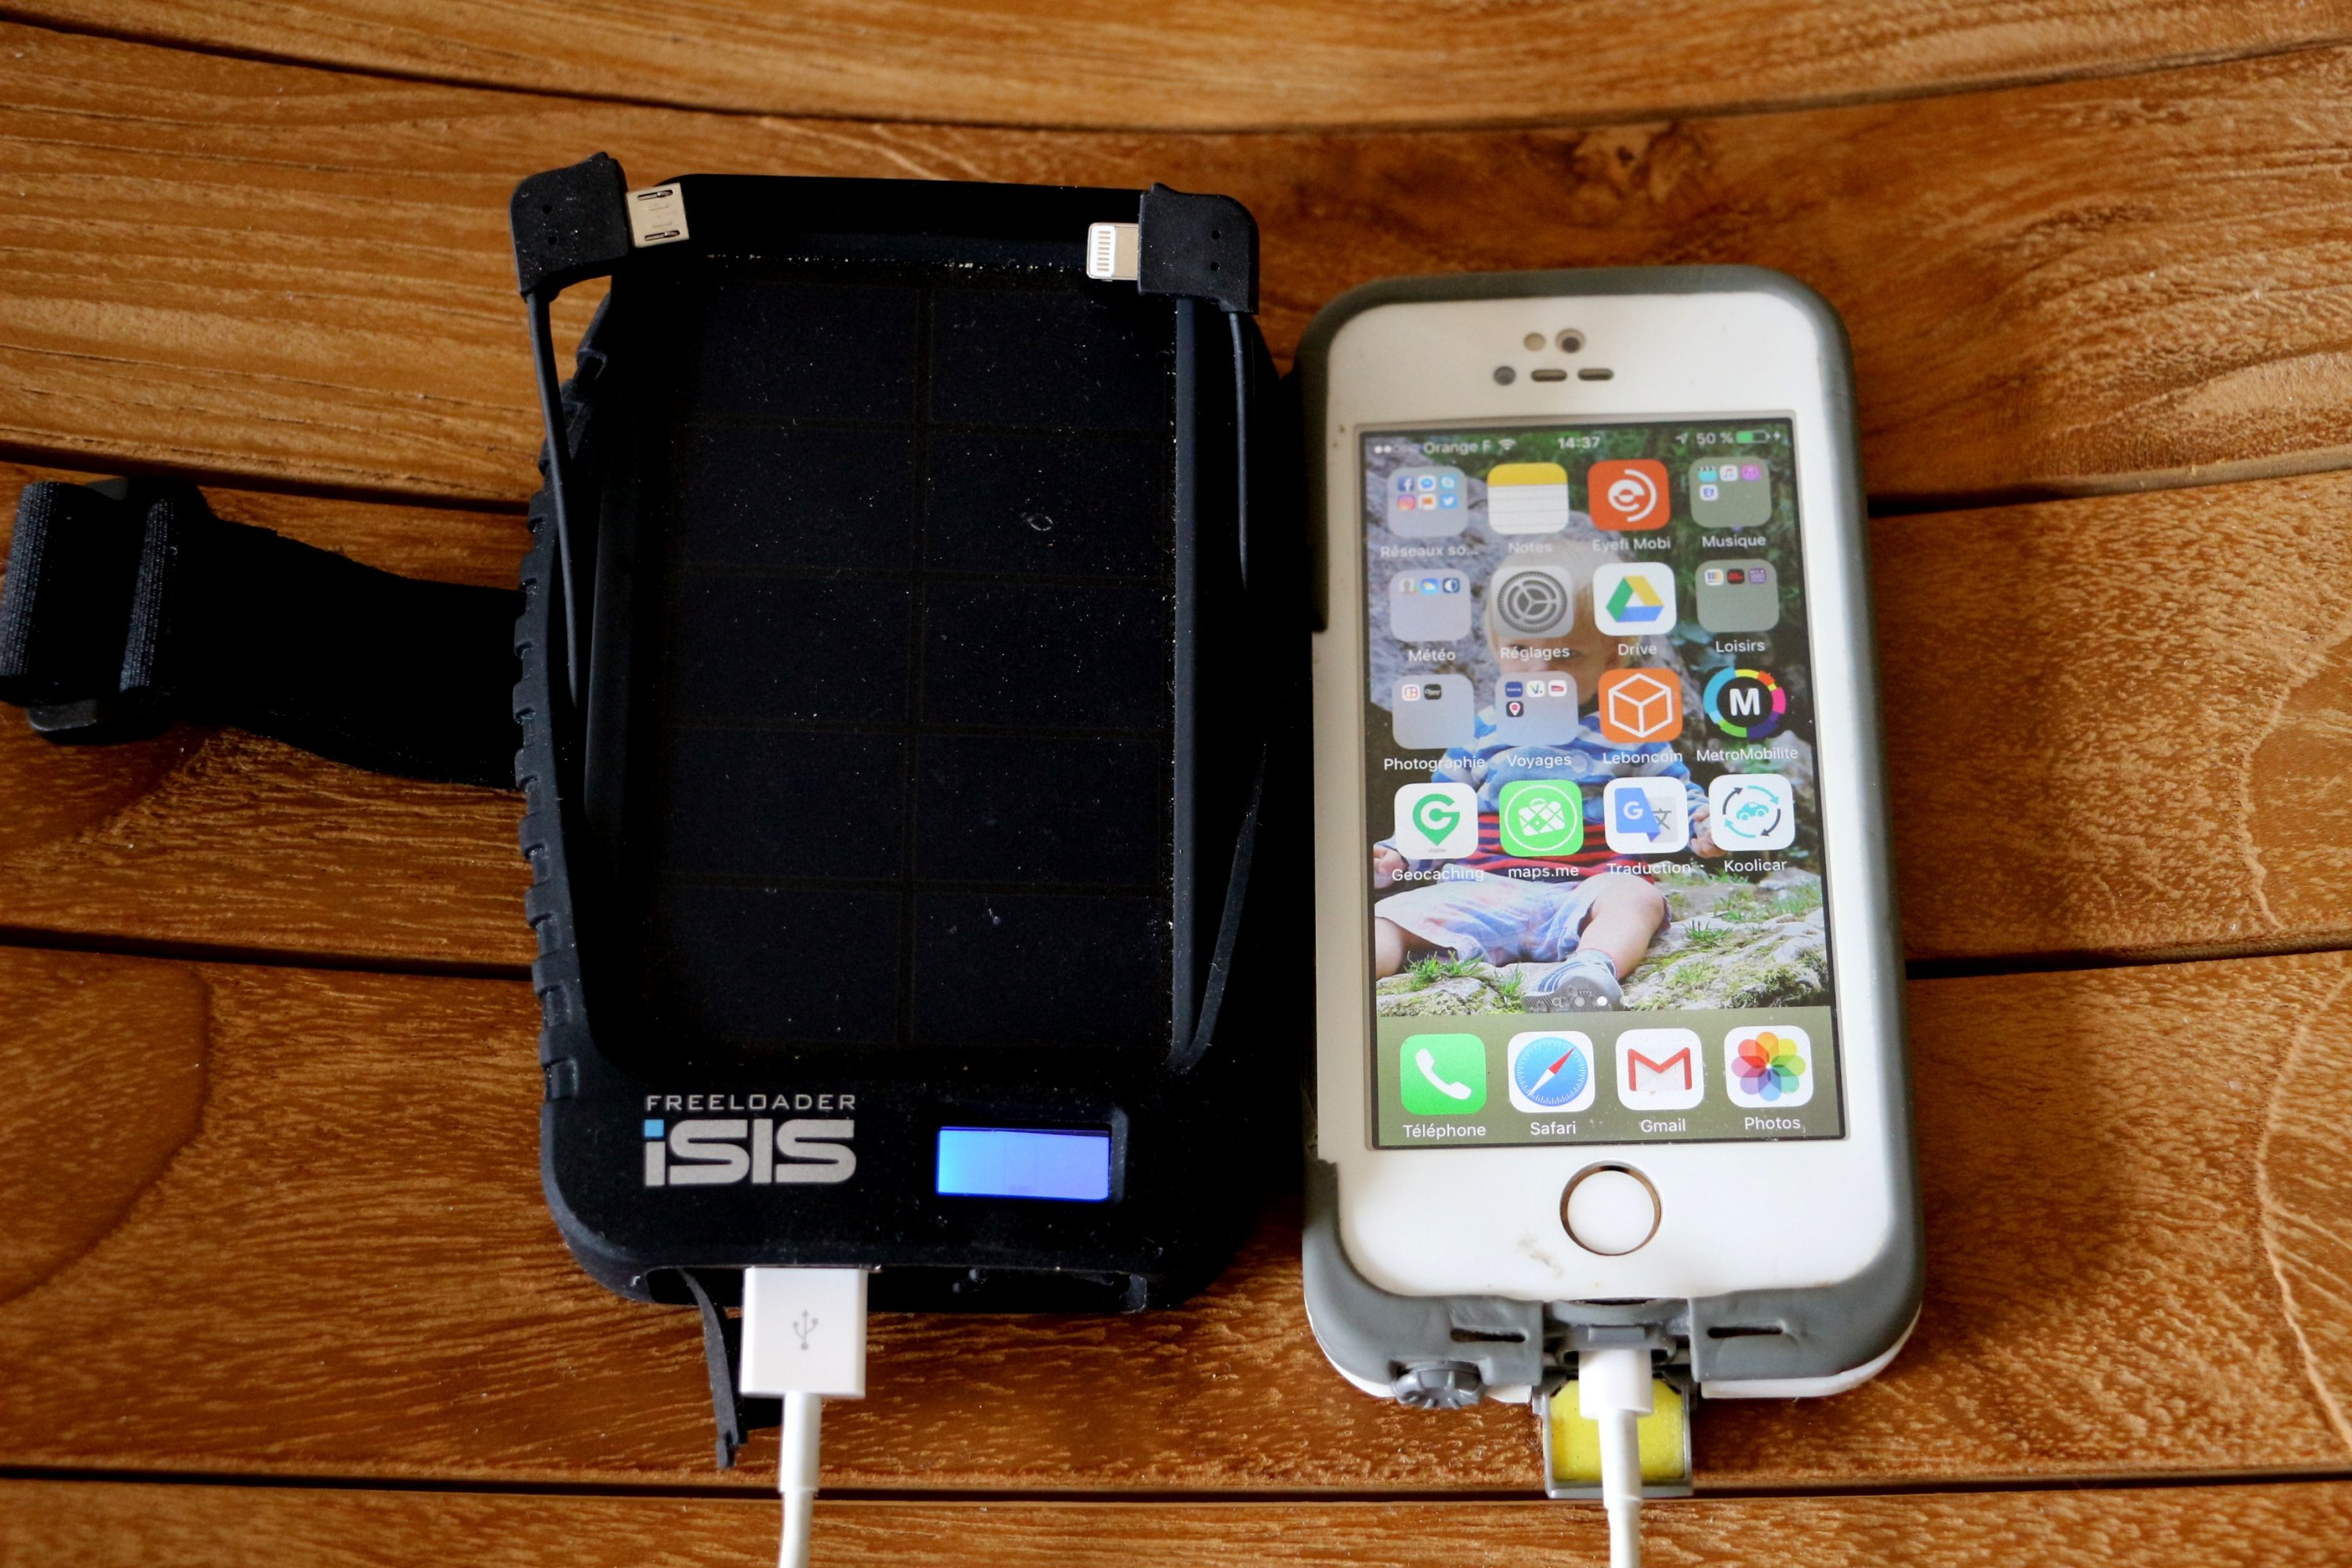 chargeur solaire globetrotter isis